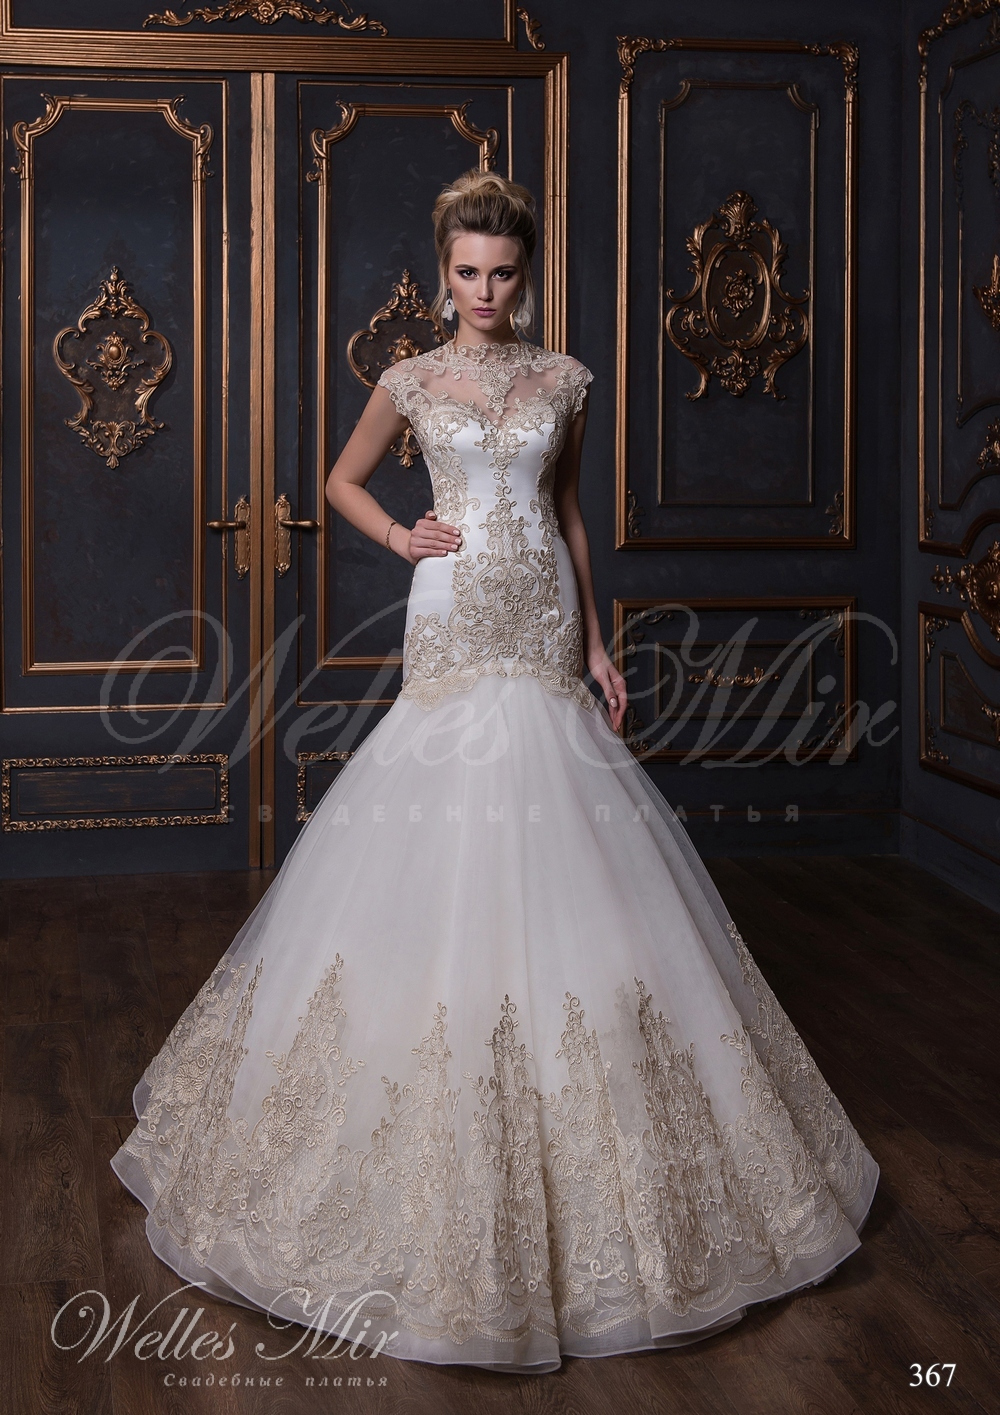 Wedding dress made of chiffon with embroidery